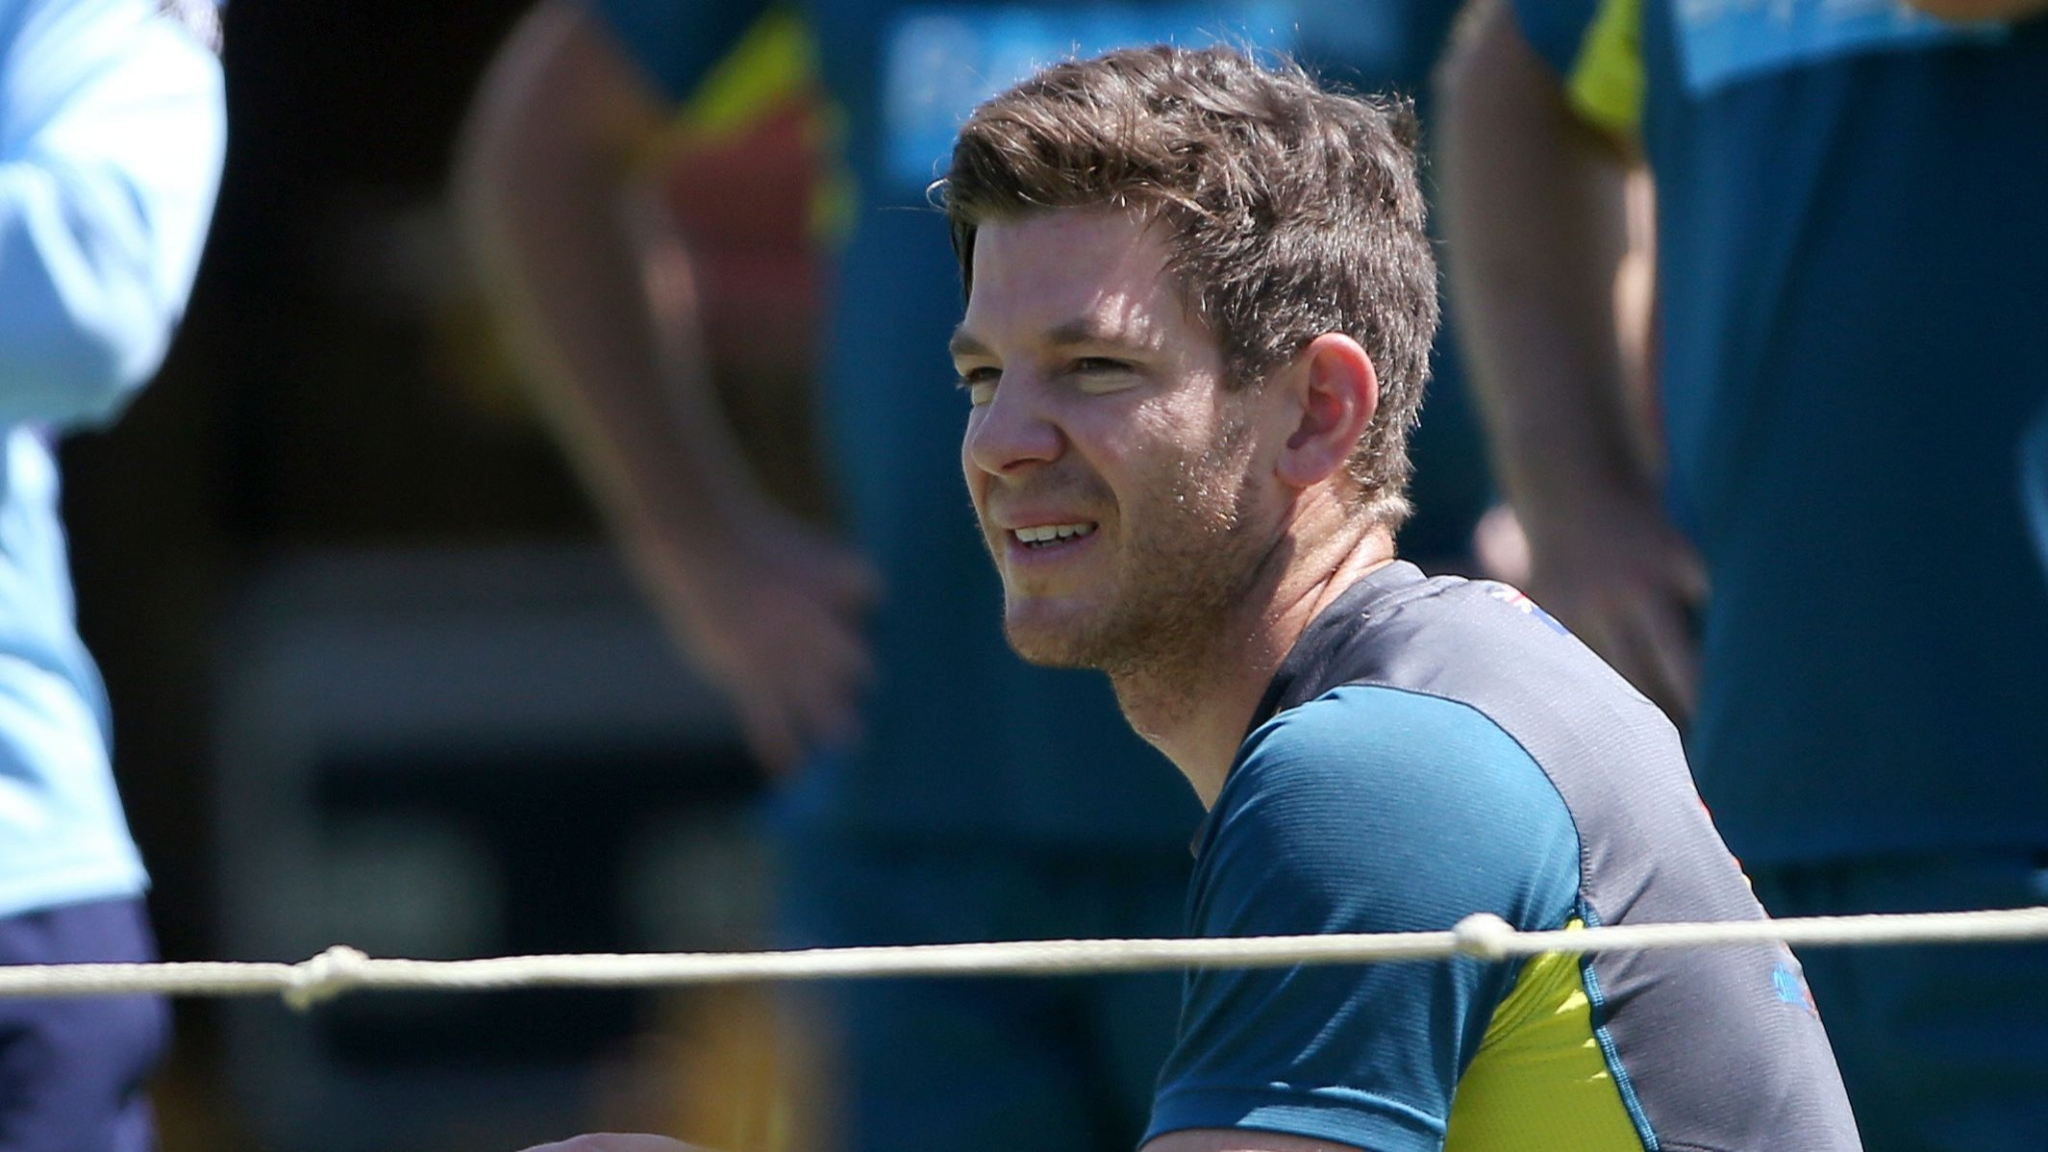 Aus Captain Tim Paine Played 5th Ashes Test With a Broken Thumb